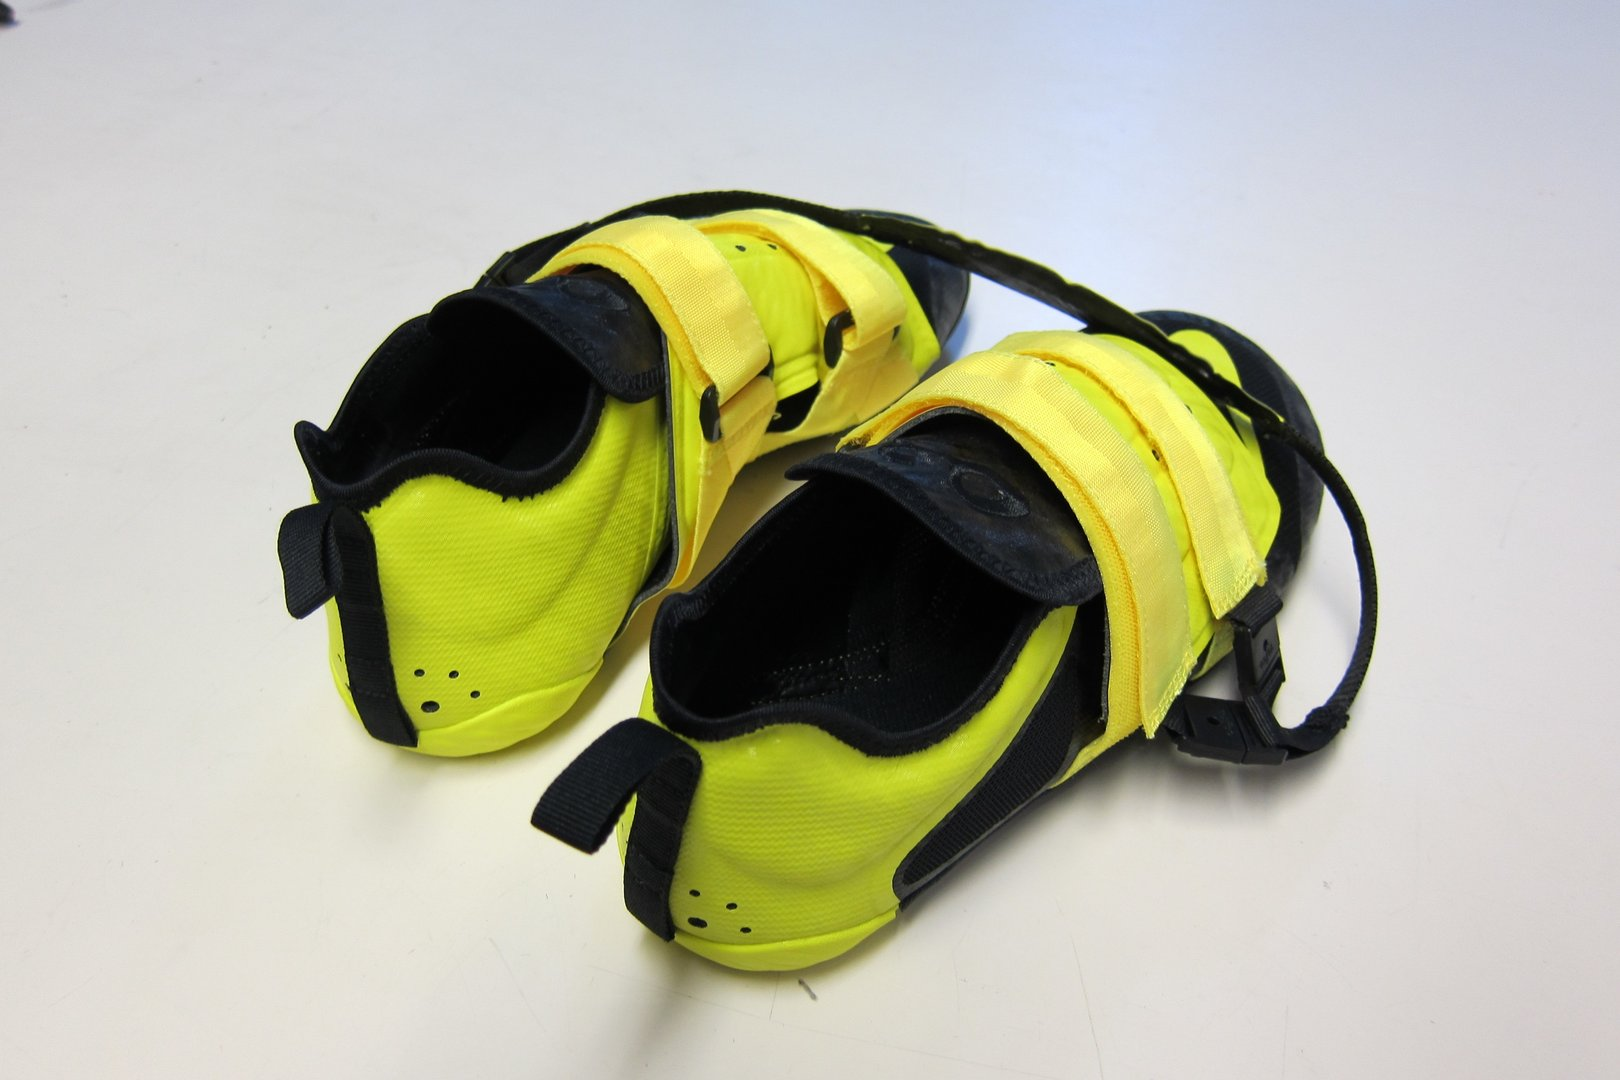 rowing shoes, Adidas - Online-Shop